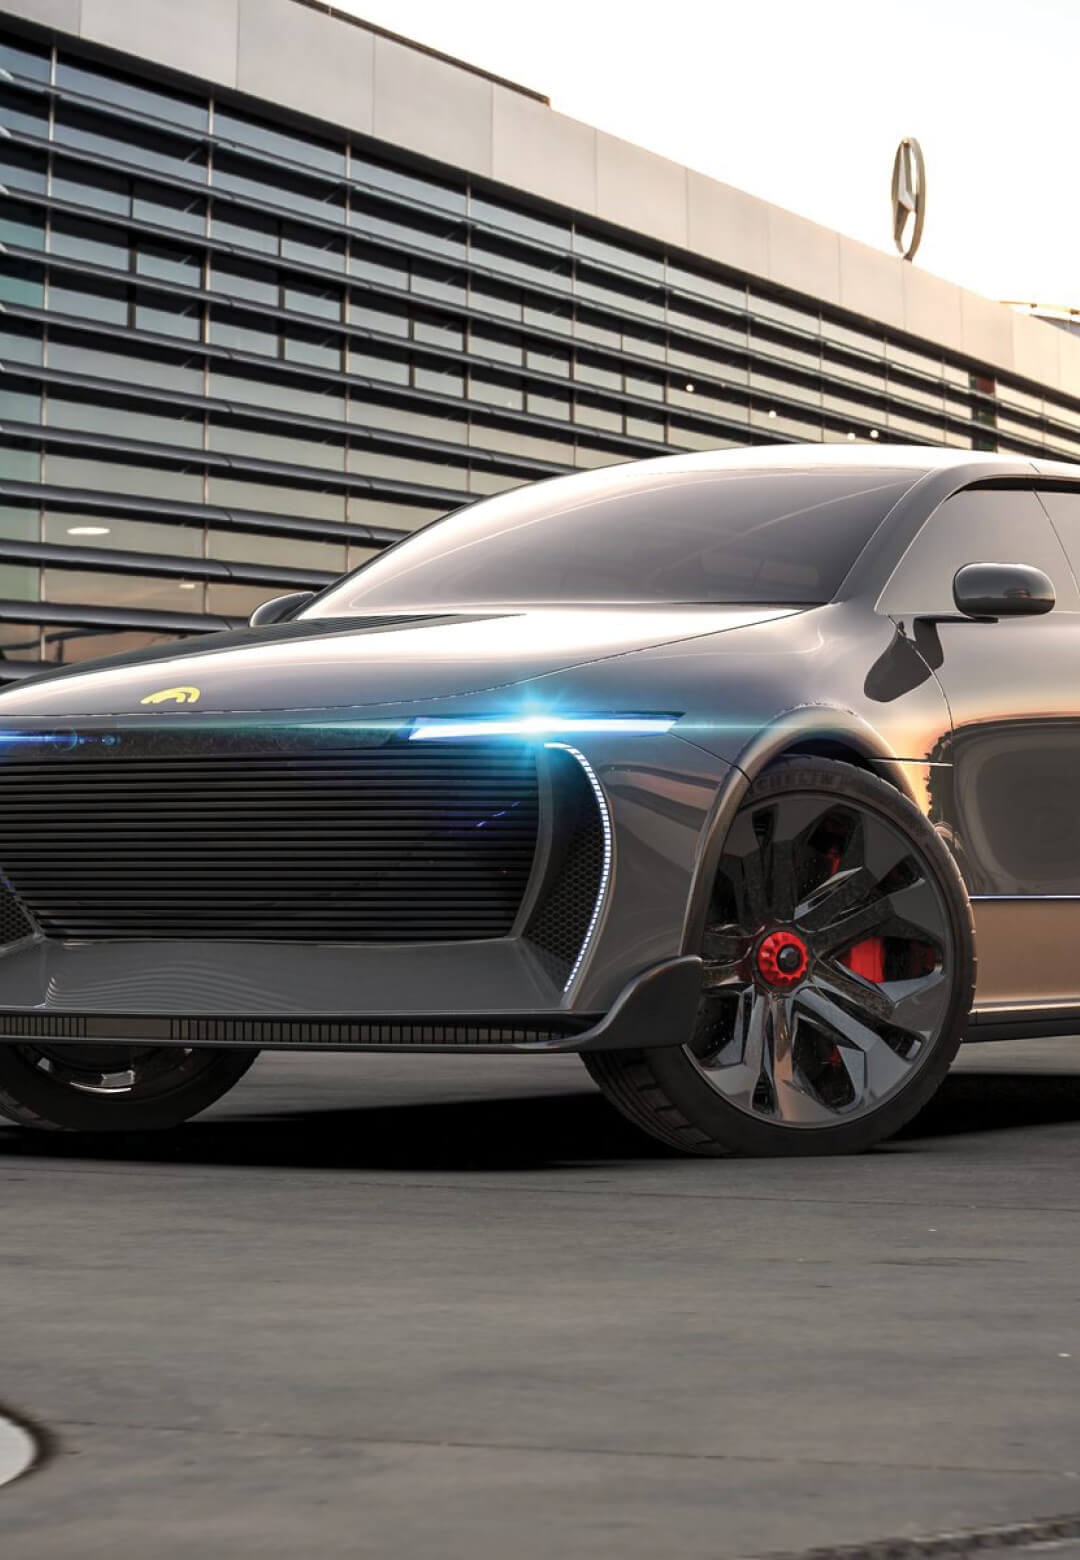 Designed by Humble Motors, Humble One is touted to be the world's first solar powered SUV | Humble One by Humble Motors | STIRworld